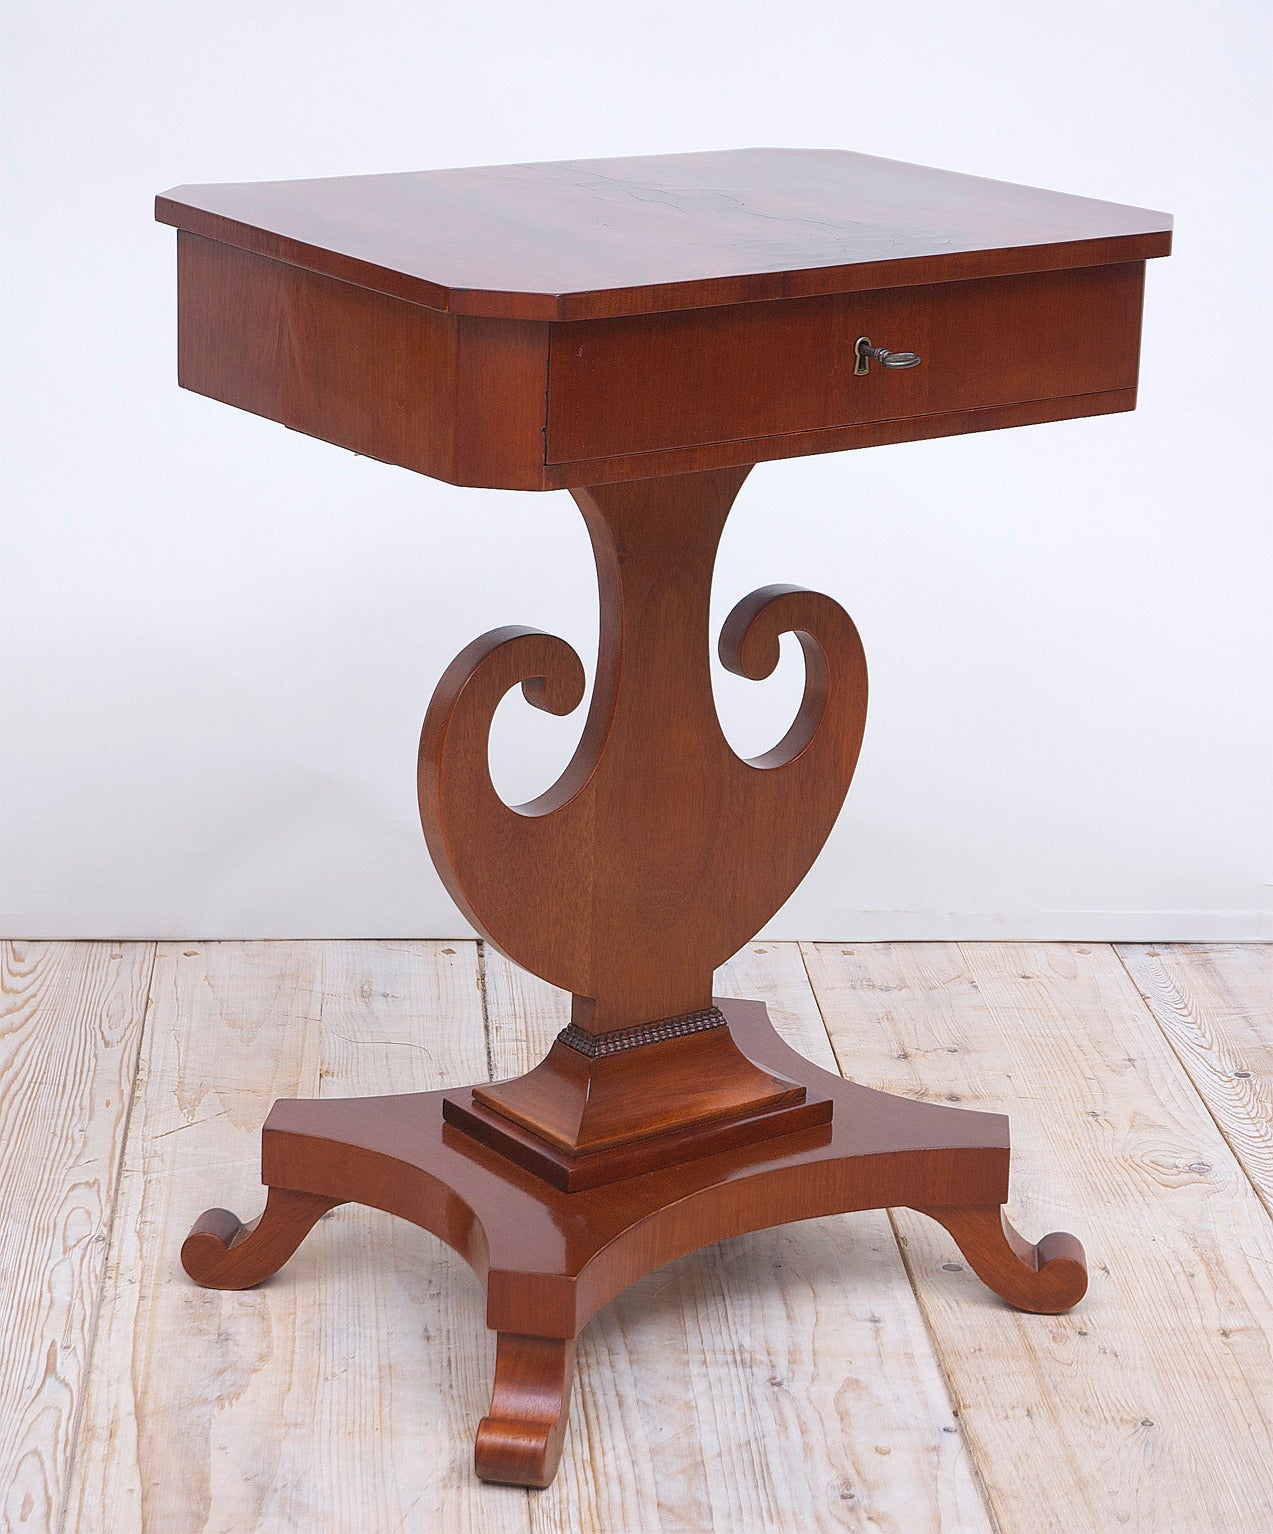 Antique Karl Johan Side Table with Lyre Base in Mahogany, Sweden, circa 1845 In Good Condition For Sale In Miami, FL